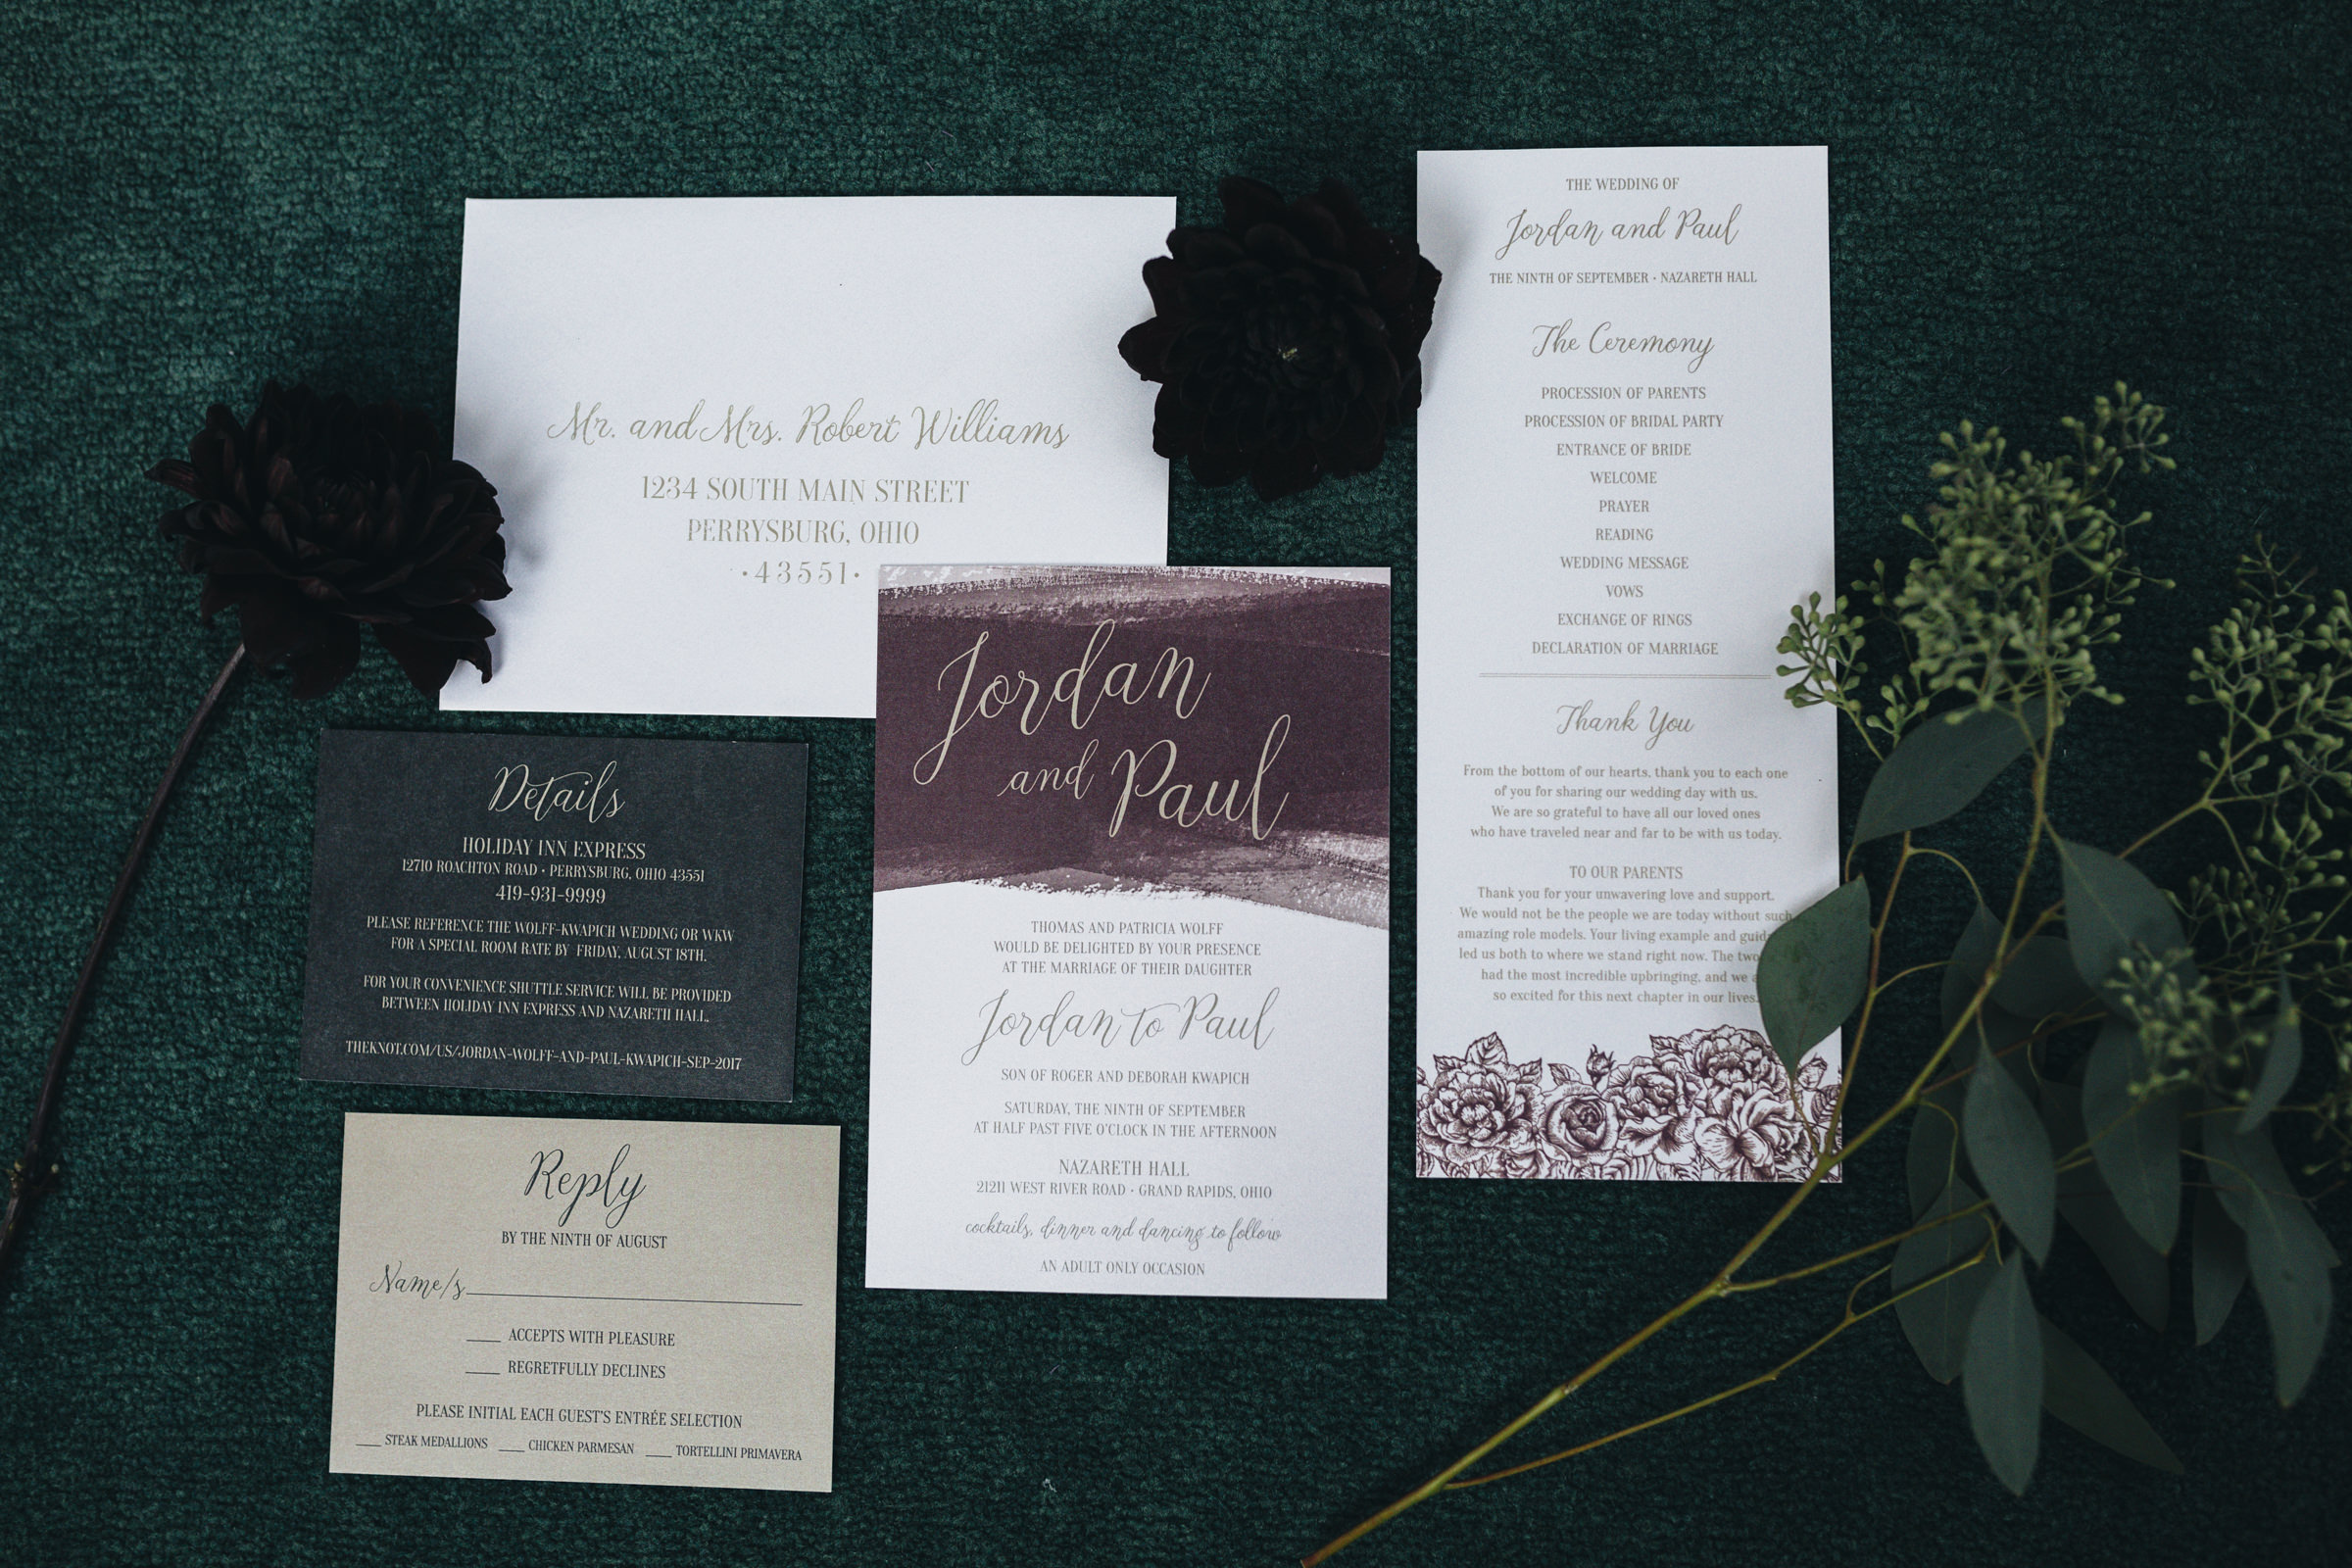 The wedding stationary used for wedding invitations and RSVP letters